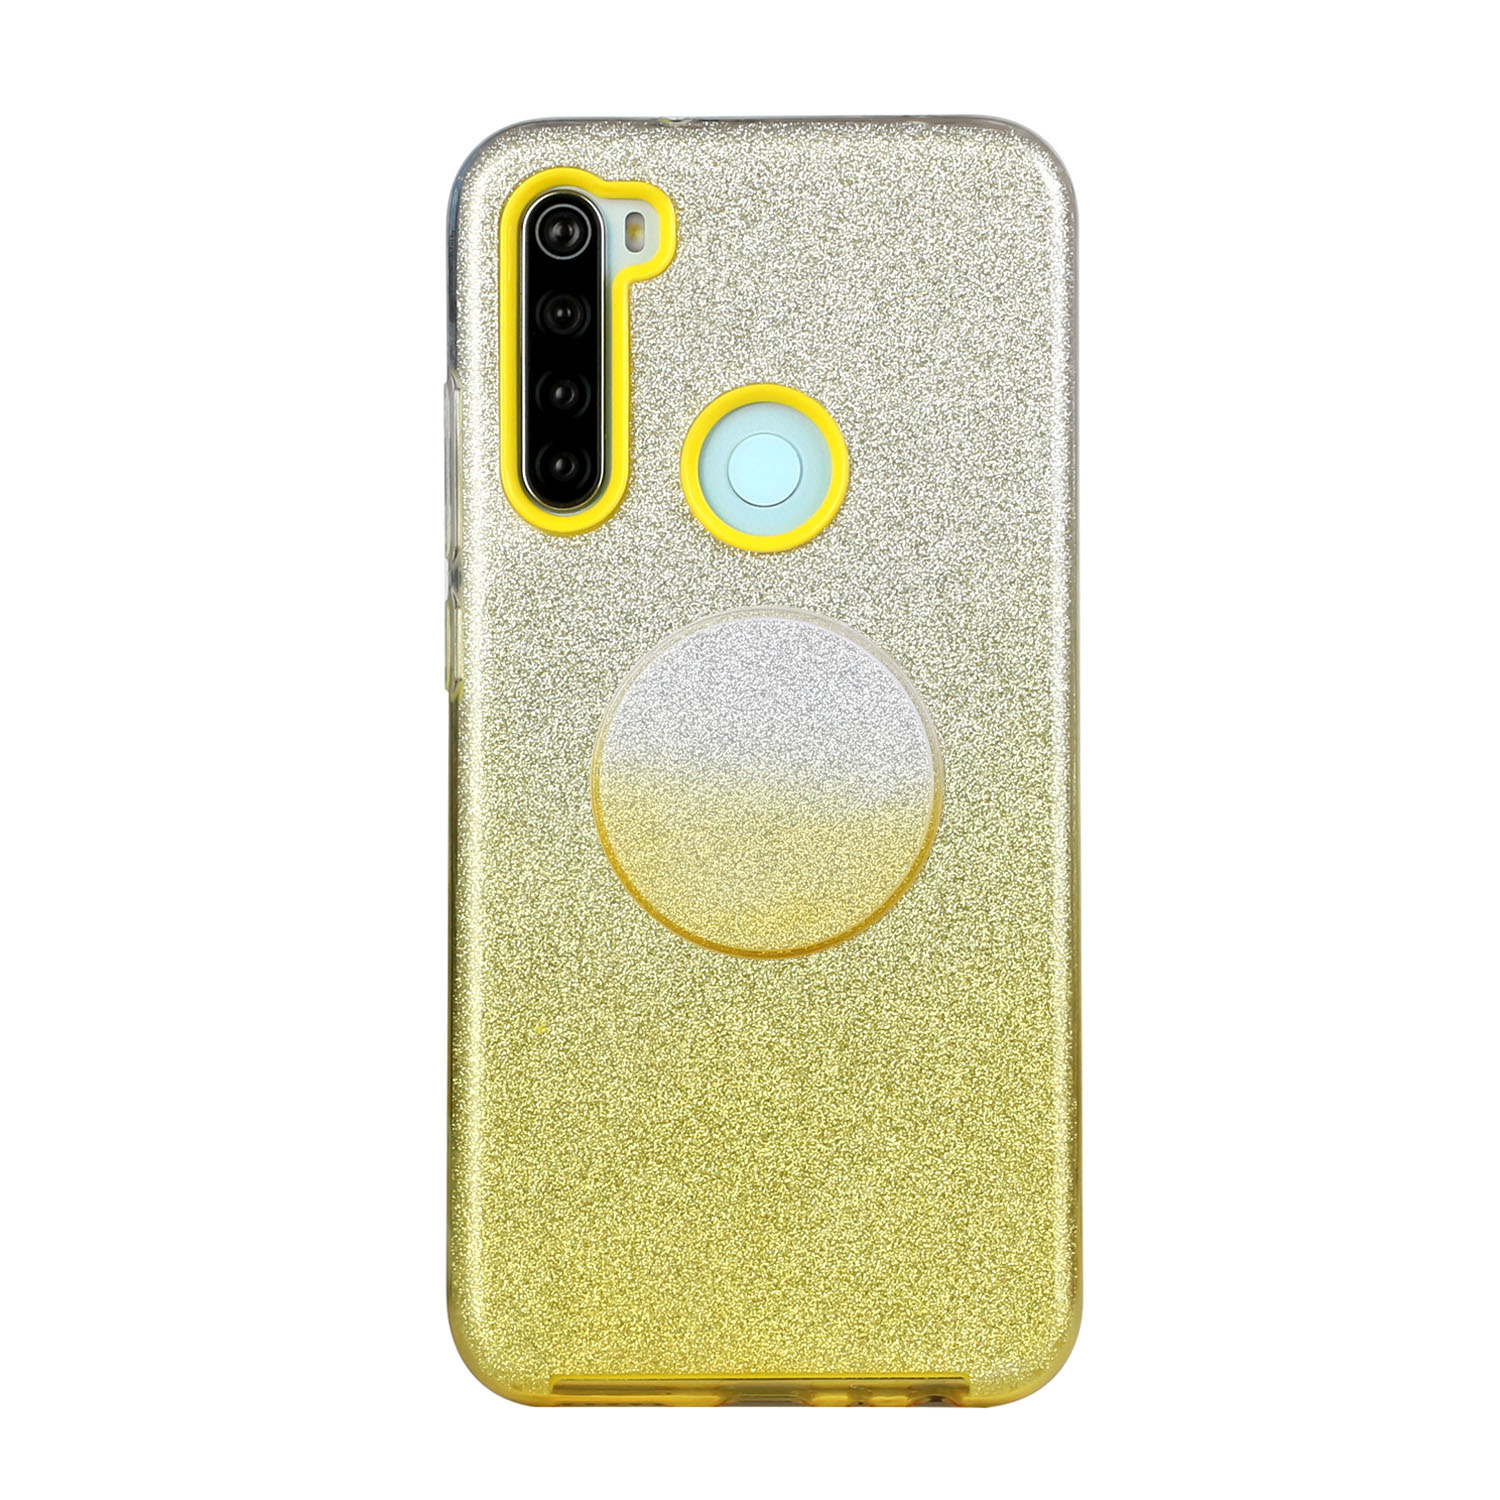 For OPPO Realme 5/Realme 5 Pro/A5 2020/A9 2020/A52/A92 Phone Case Gradient Color Glitter Powder Phone Cover with Airbag Bracket yellow